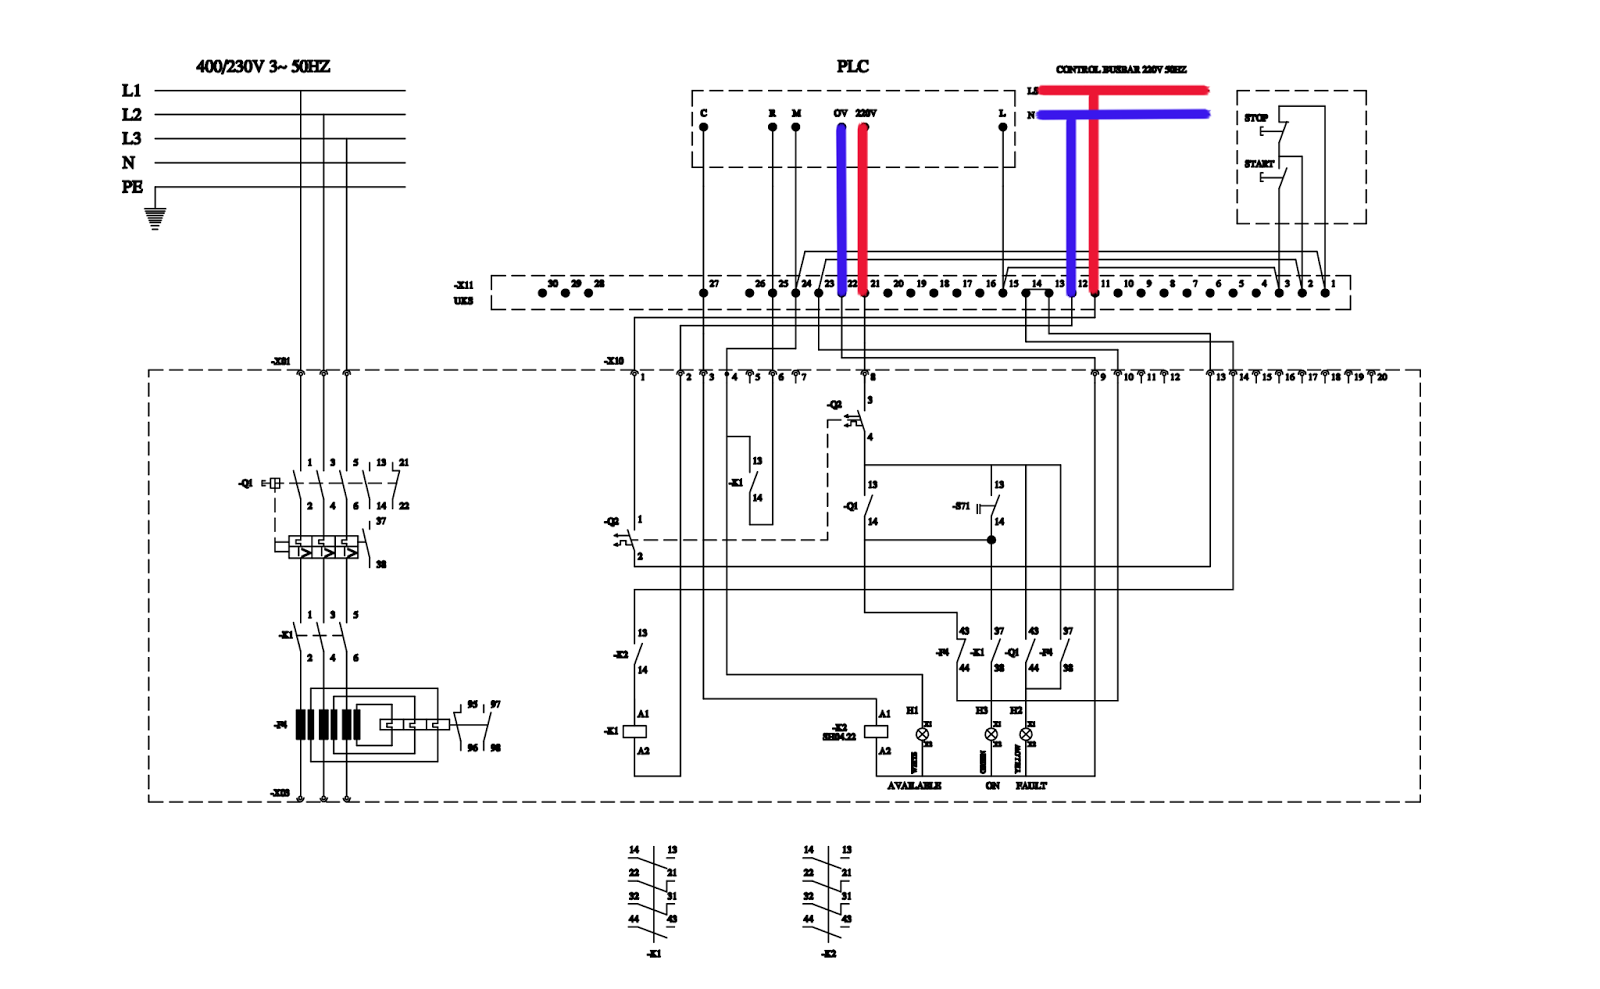 Plc Panel Wiring Diagrams Diagram Pdf Get Free Image About Basic Electrical Design Of A